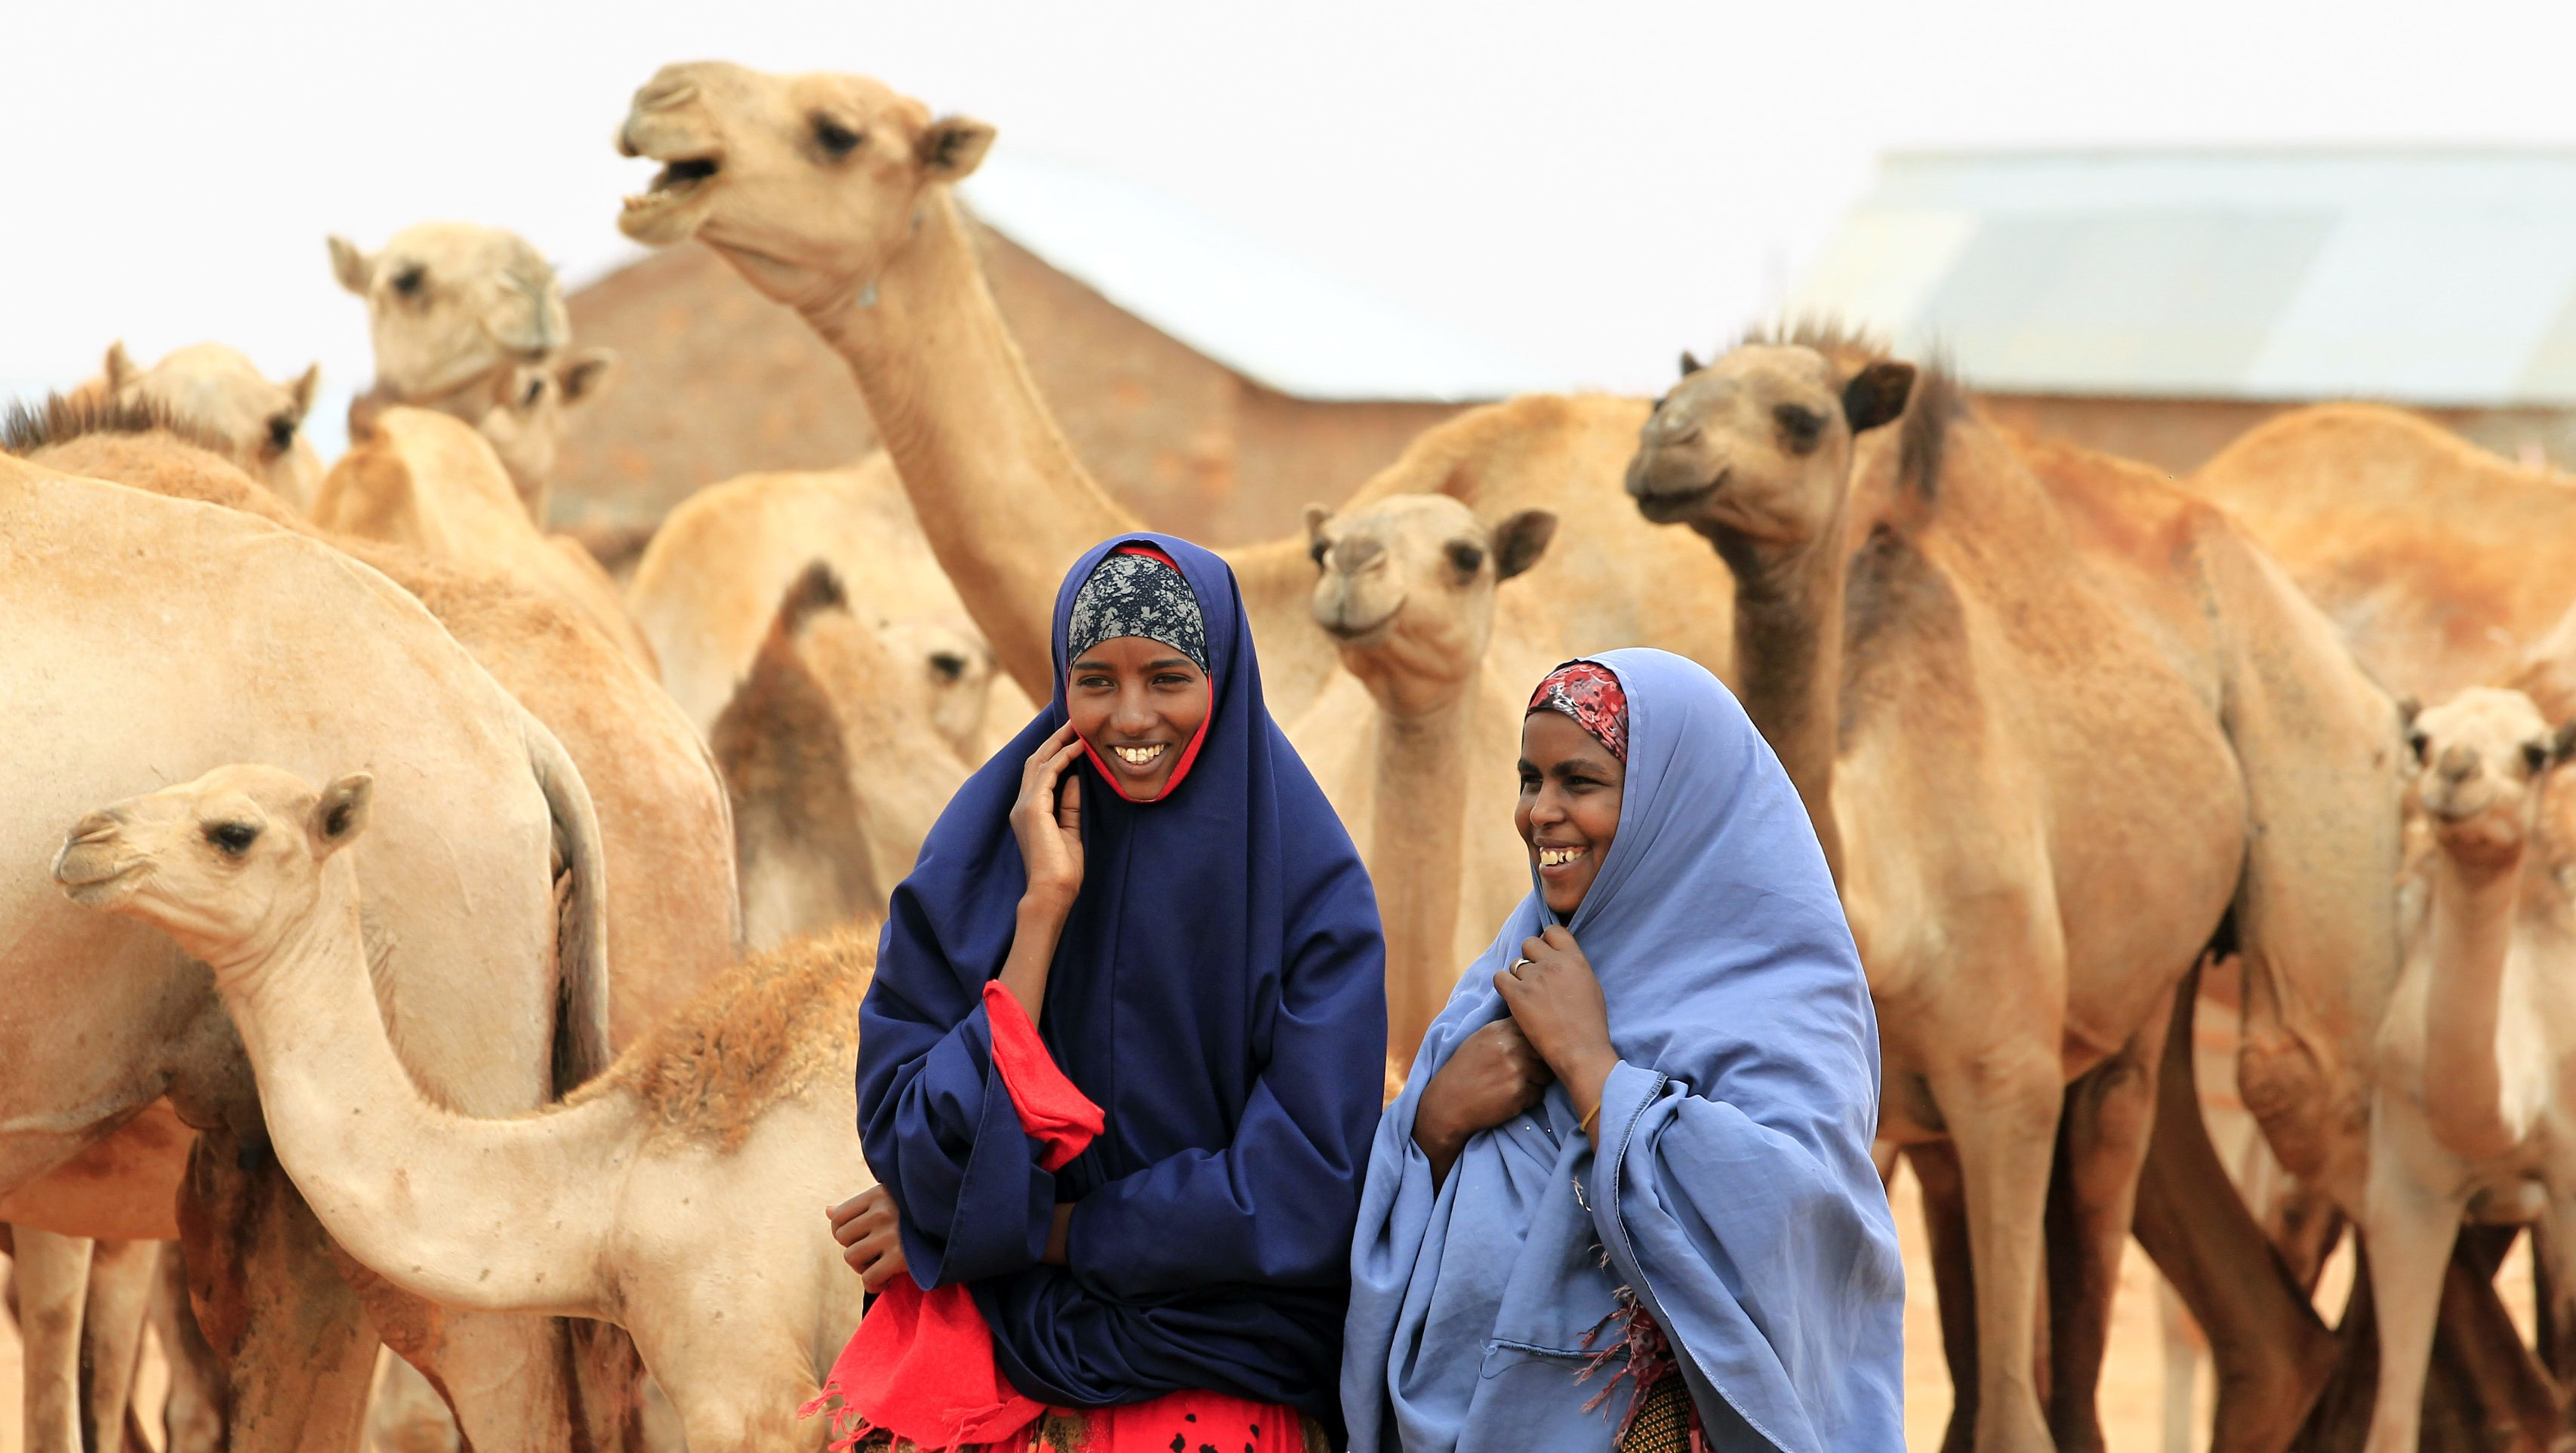 Somali women talk as their drought-stricken camels wait for their turn to drink water from a tank near Harfo, 70 km from Galkayo northwest of Somalia's capital Mogadishu, July 20, 2011. The United Nations on Wednesday declared famine in two regions of southern Somalia, and warned that this could spread further within two months in the war-ravaged Horn of Africa country unless donors step in.